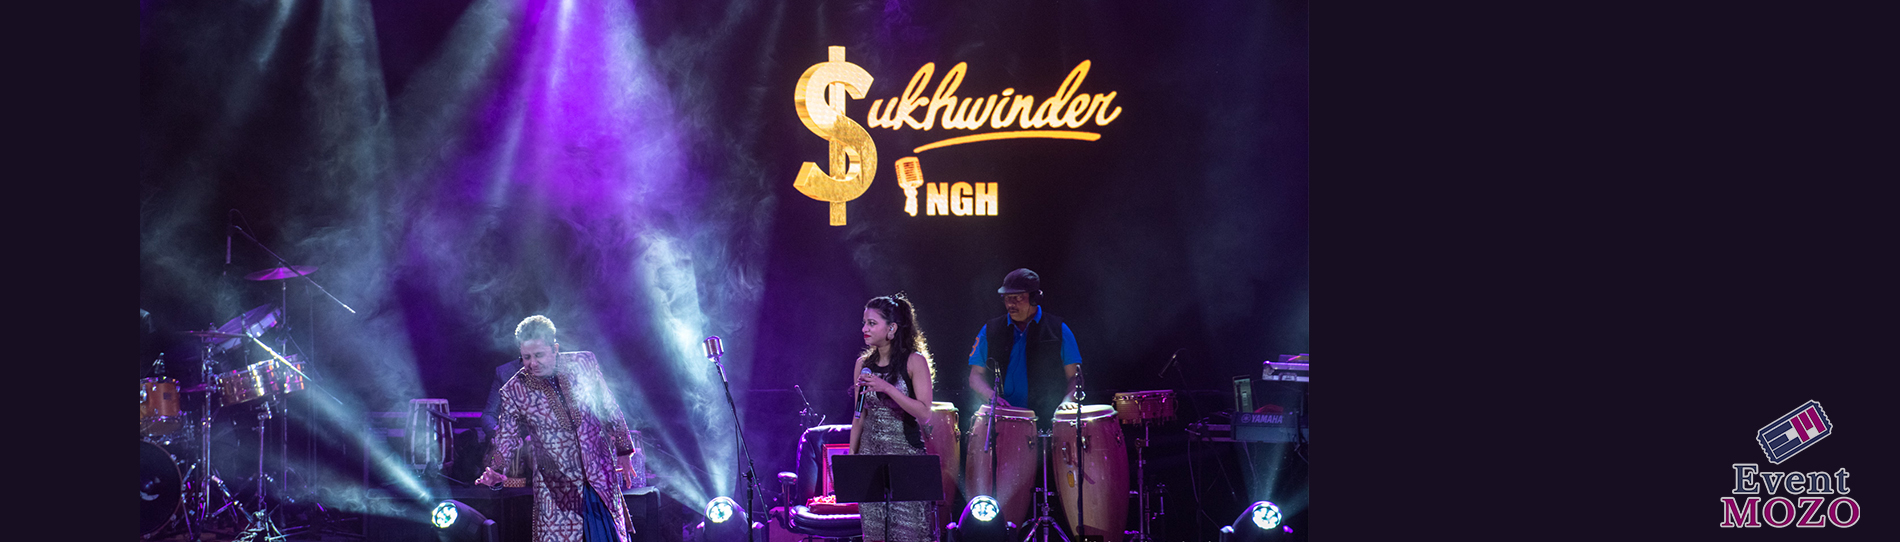 EventMozo Jai ho Sukhwinder Singh Live in Concert - Bay Area